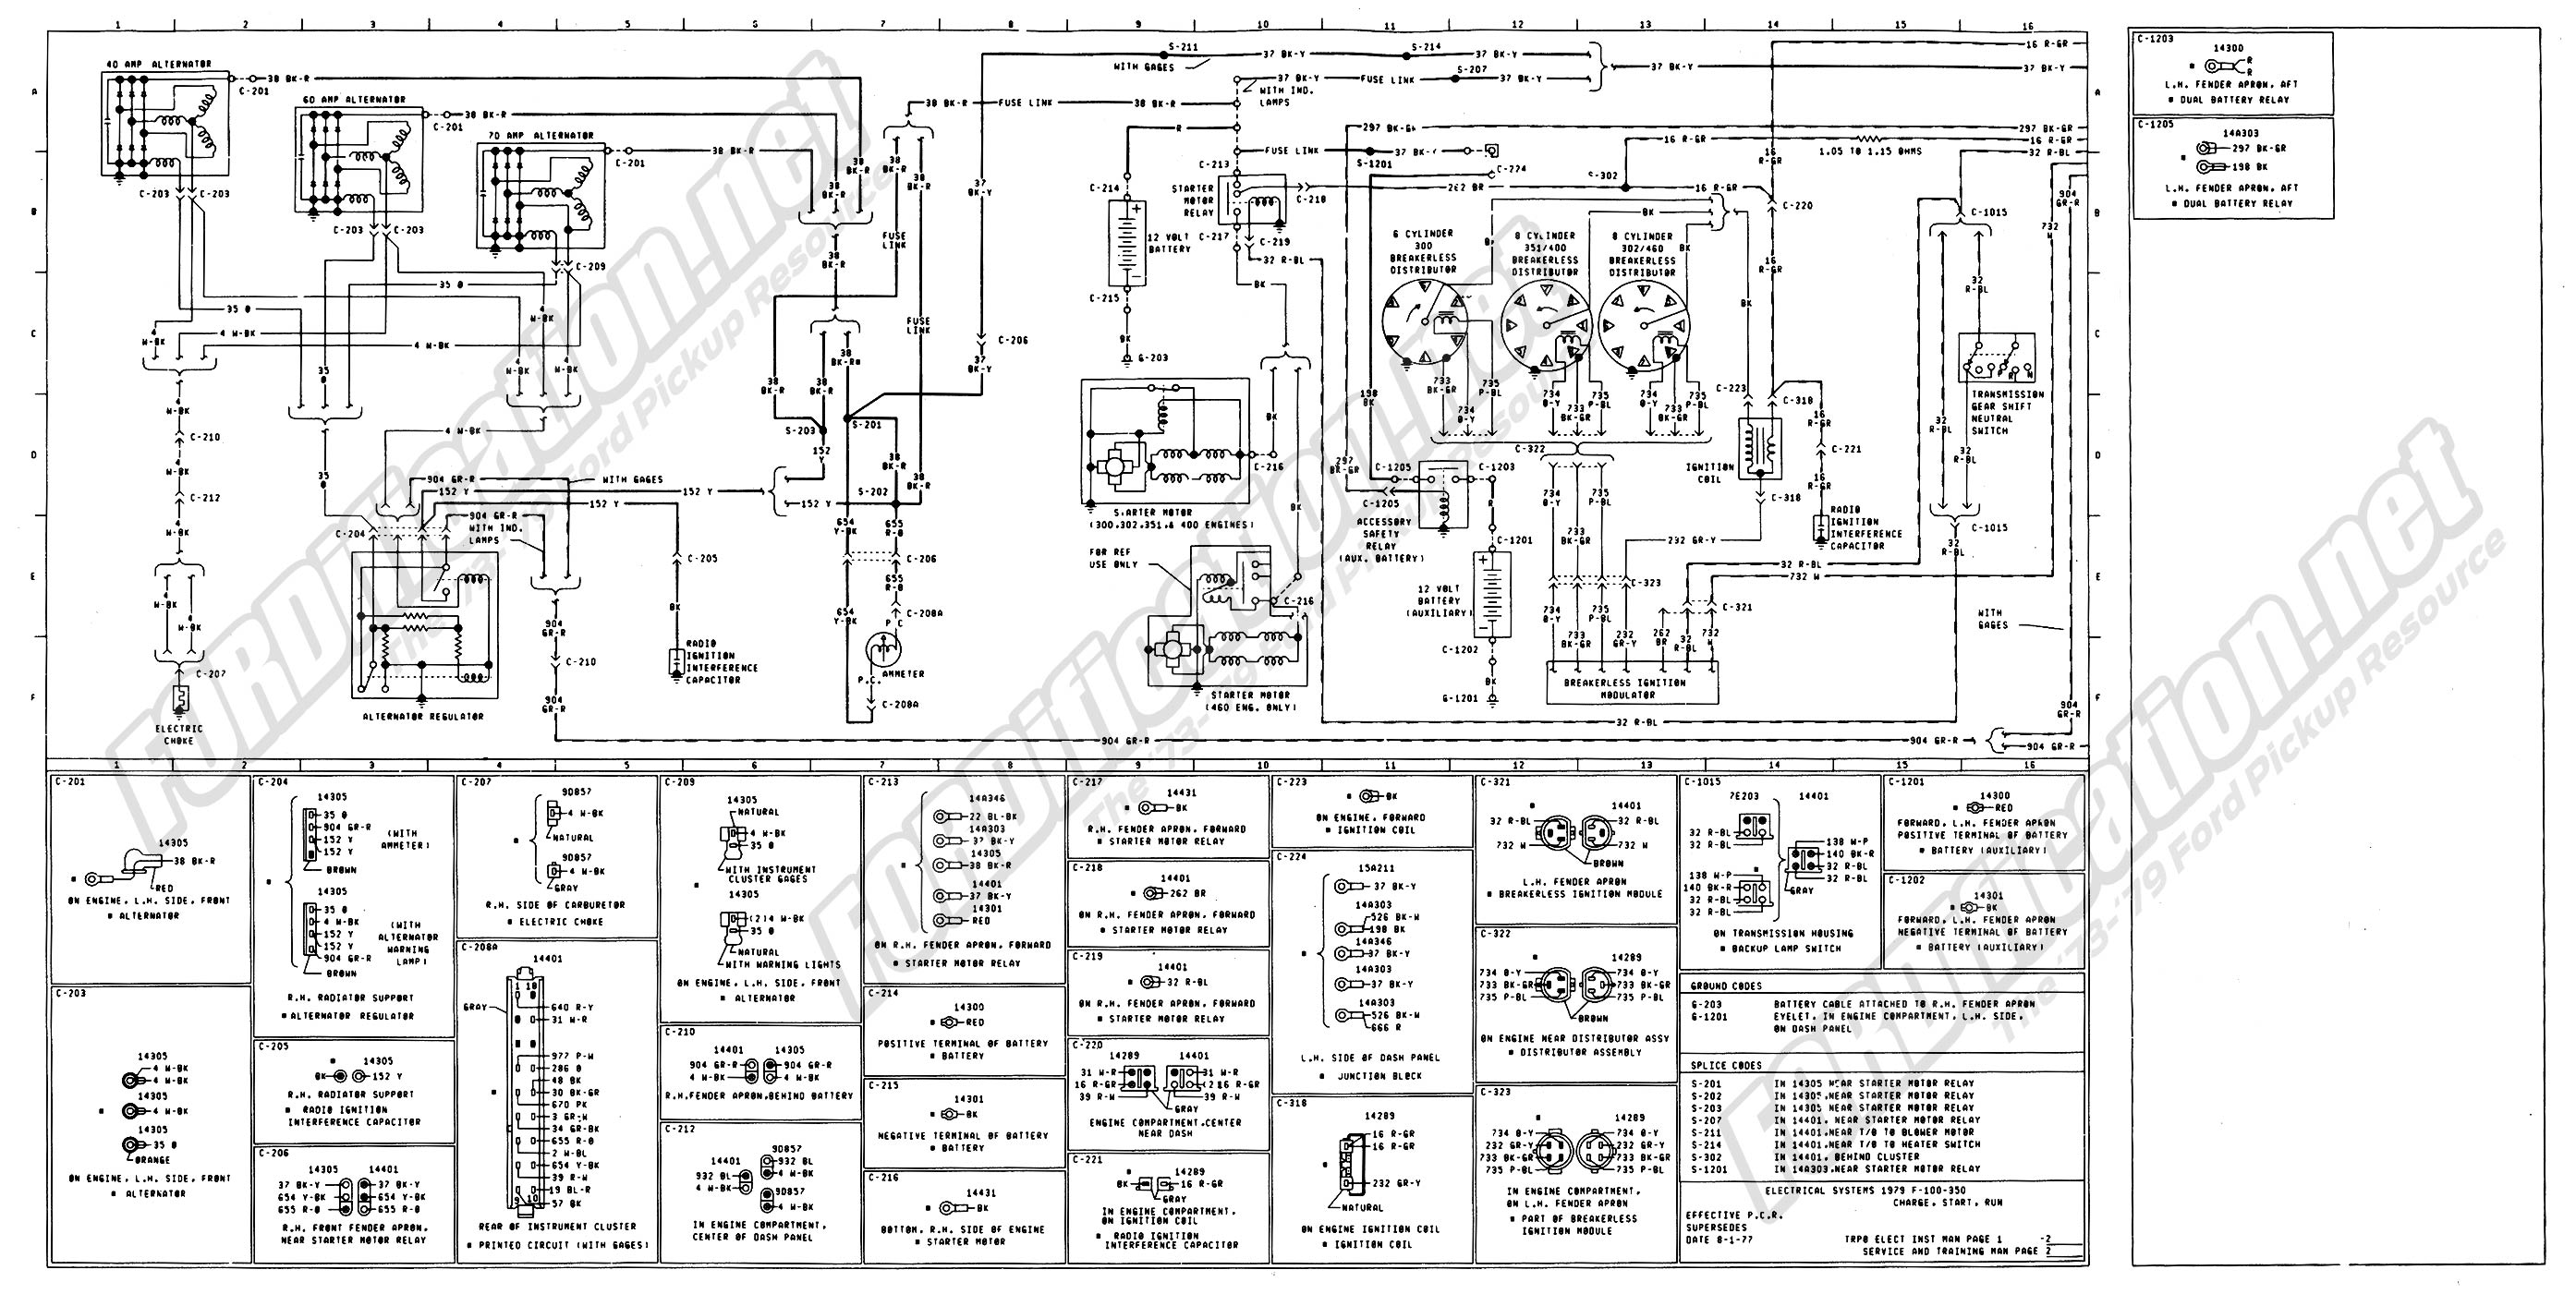 1983 Ford F100 Wiring Diagram Library 78 Key Switch Get 1978 Free Engine Image For User Ignition